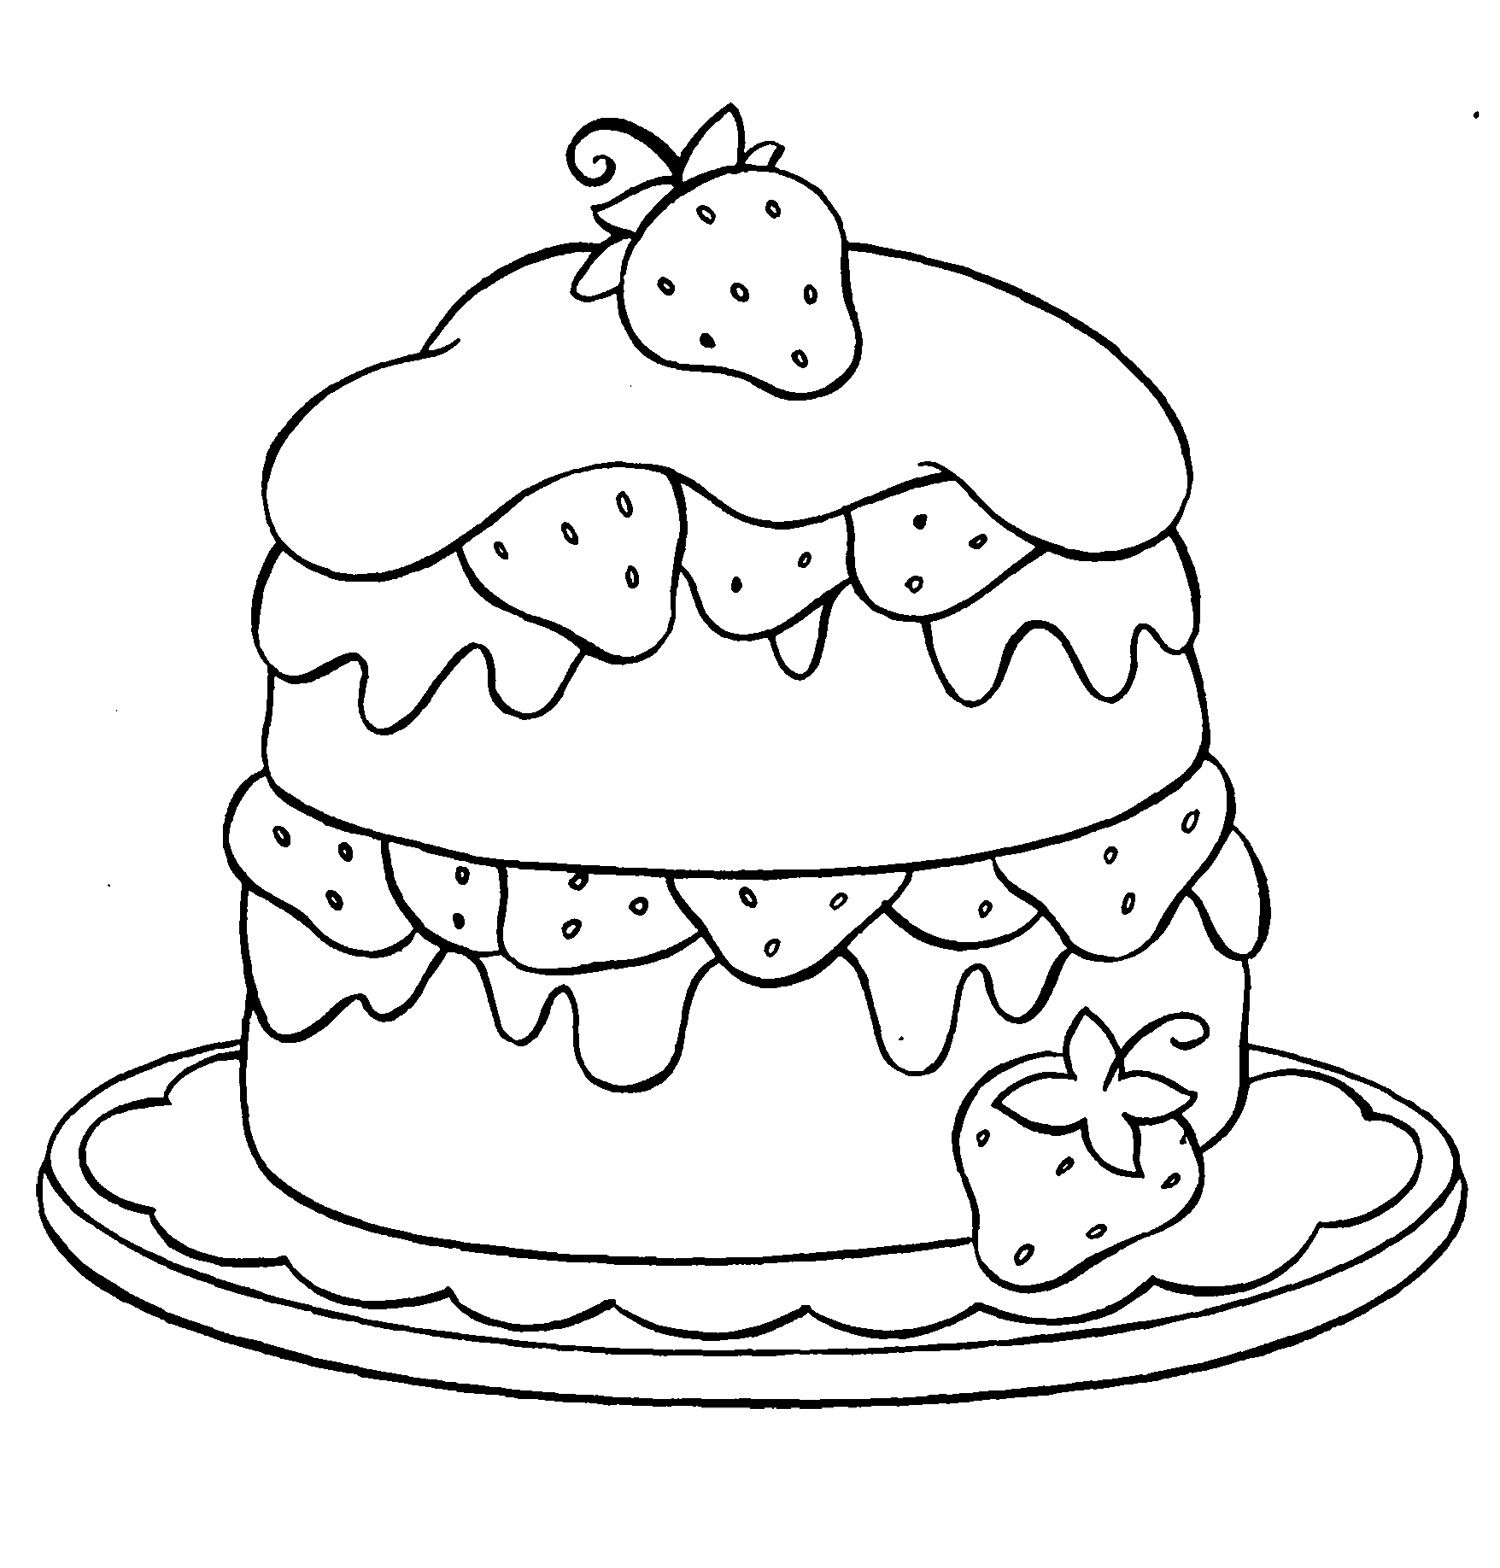 edible food coloring free easy to print cake coloring pages in 2020 coloring edible food